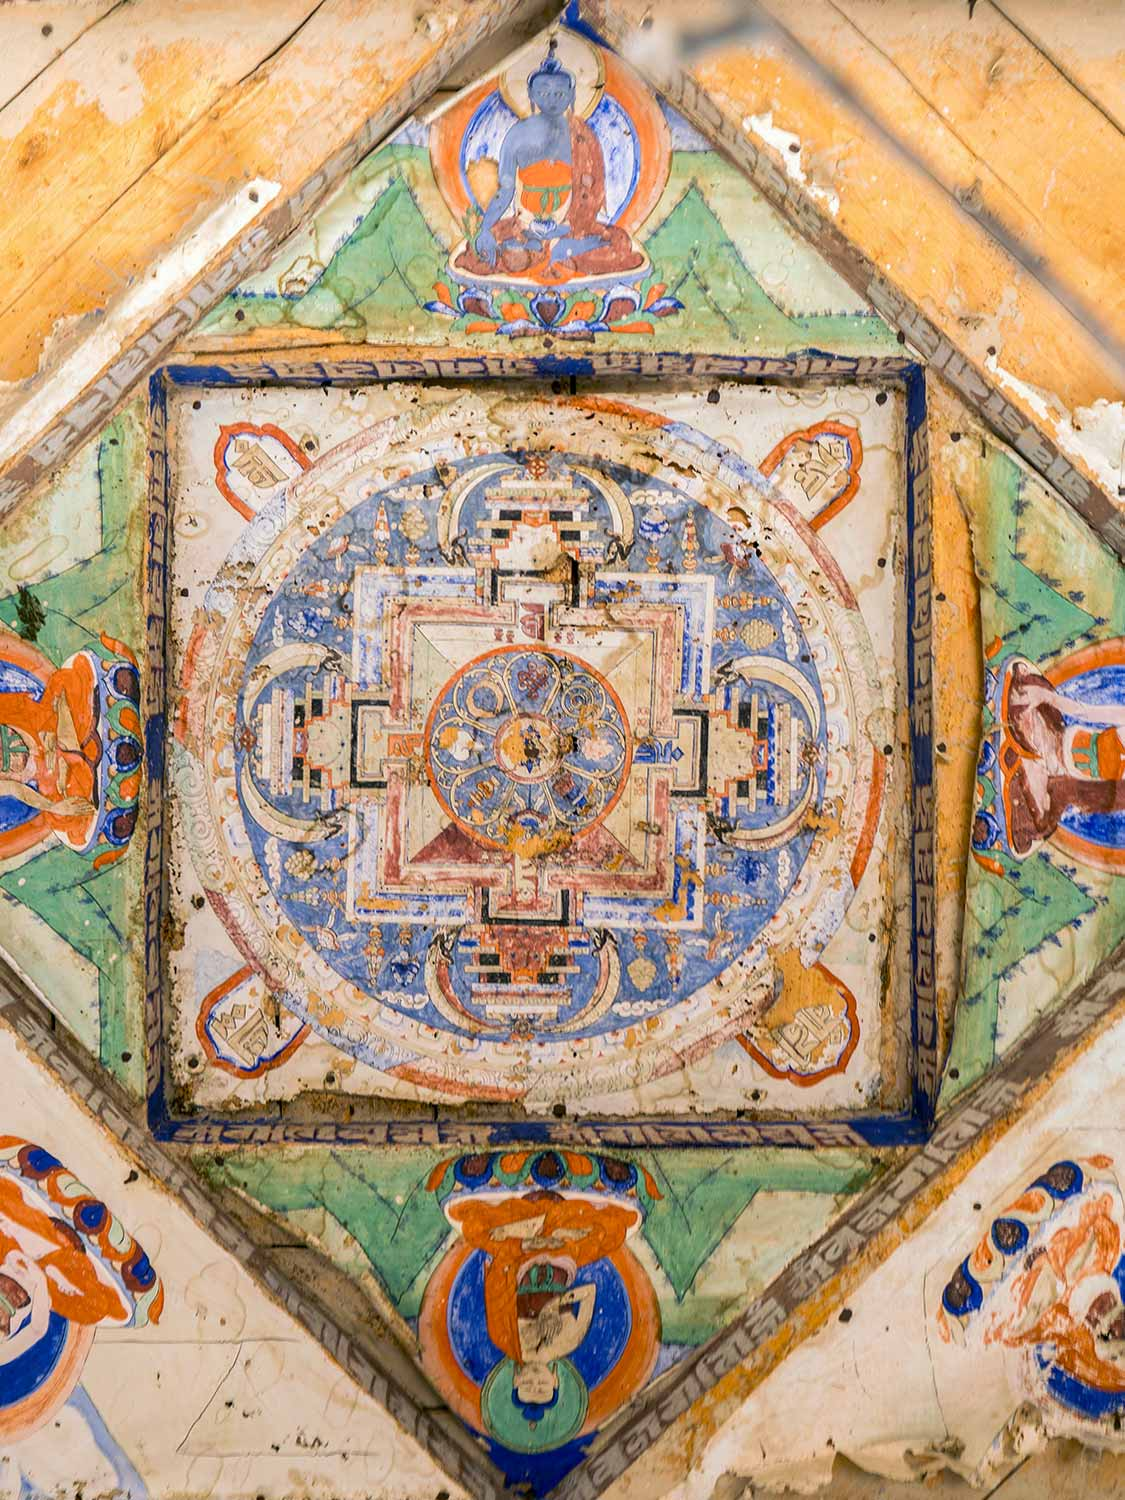 Mandala painting in a stupa at Skurbuchan, Ladakh, detail